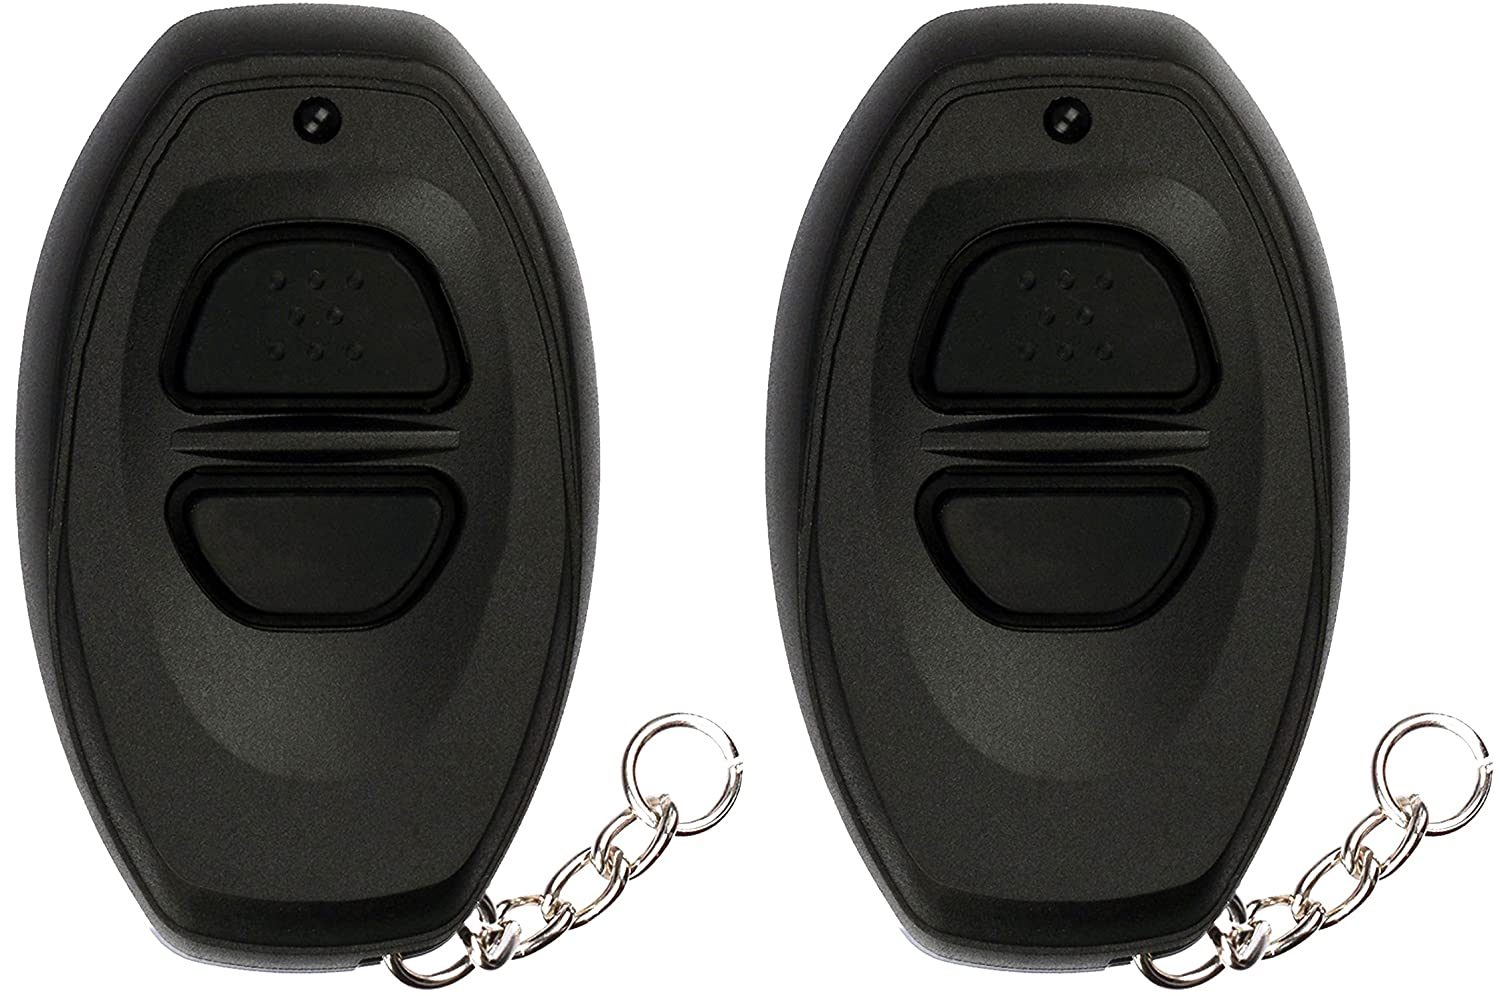 KeylessOption Keyless Entry Remote Control Car Key Fob Replacement for Toyota RS3000 BAB237131-022 Pack of 2